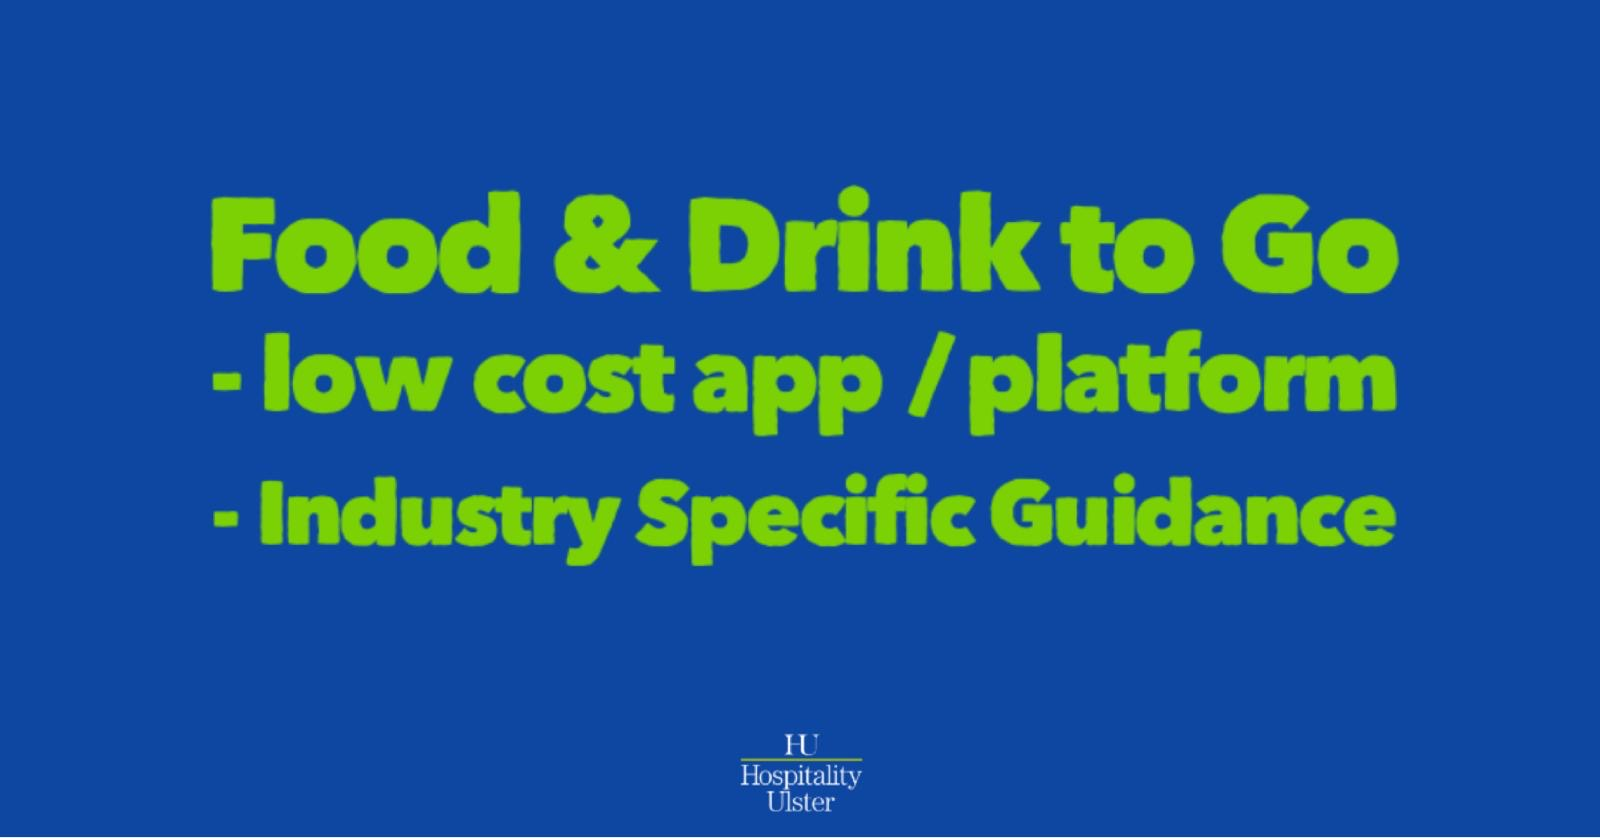 HU UPDATE FOOD AND DRINK TO GO LOW COST APP INDUSTRY SPECIFIC GUIDANCE